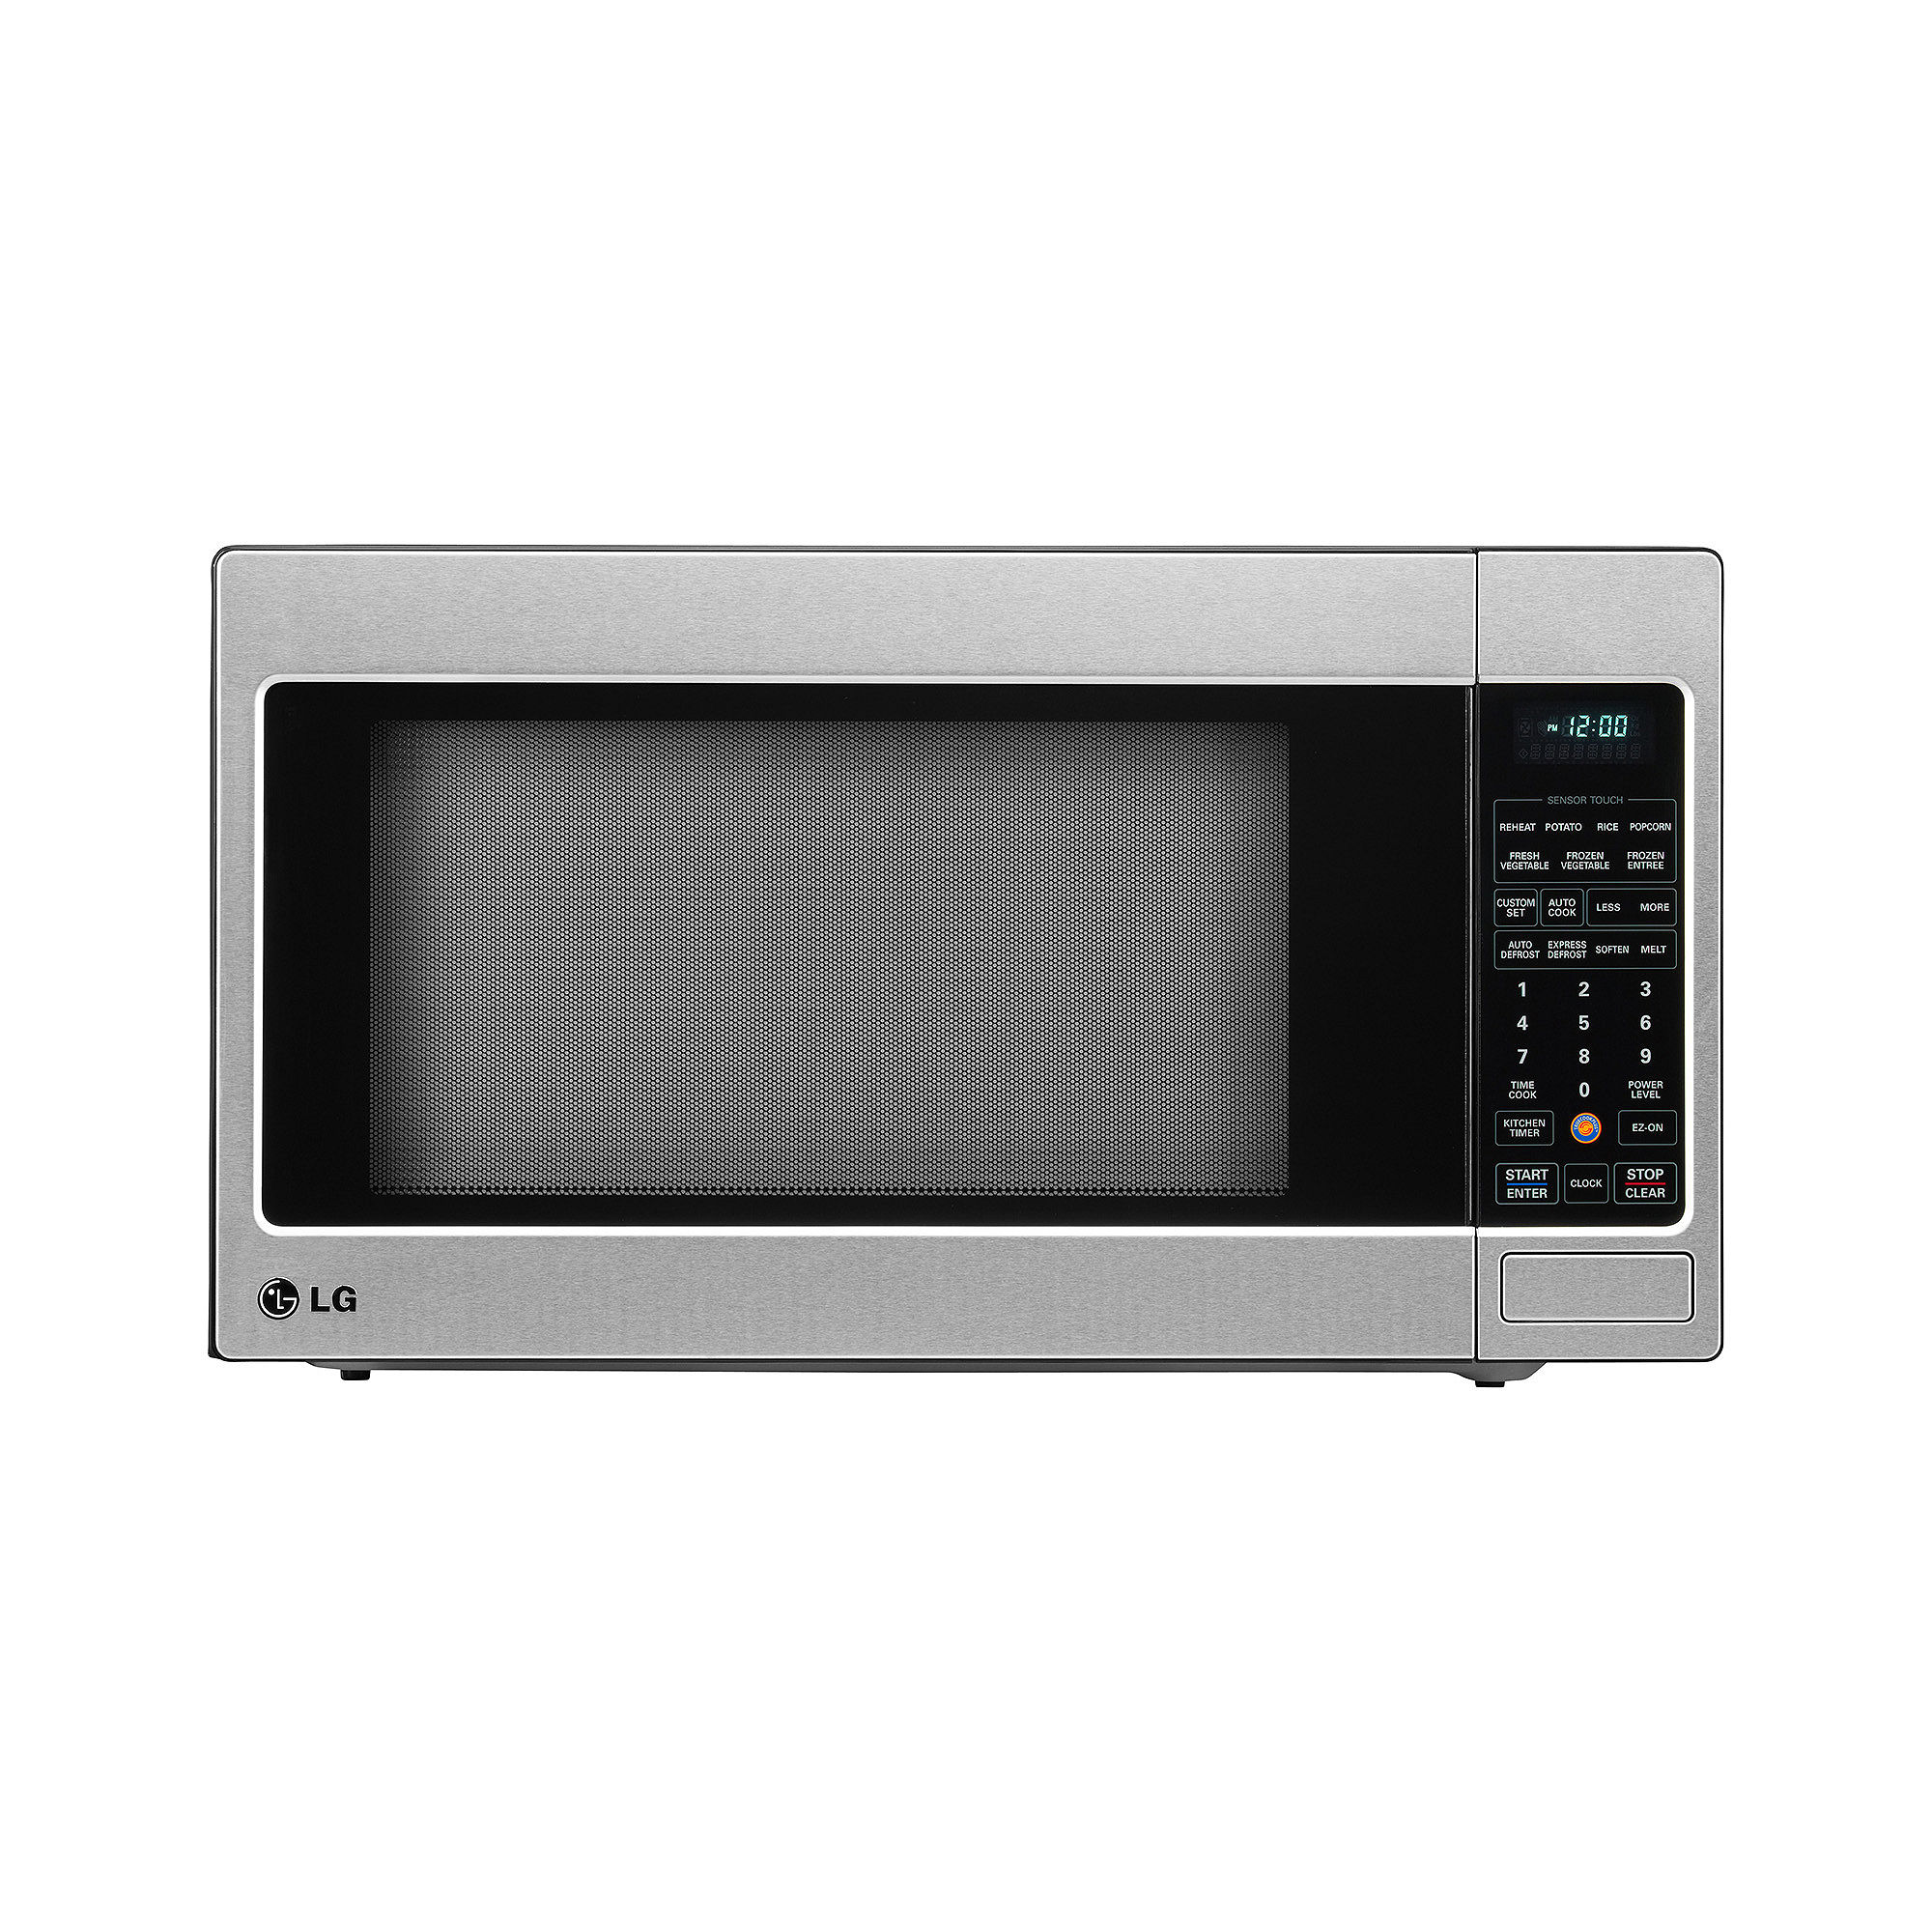 Countertop Microwave Lg : ... image for LG 2.0 Cu. Ft. Countertop Microwave Oven with TrueCookPlus